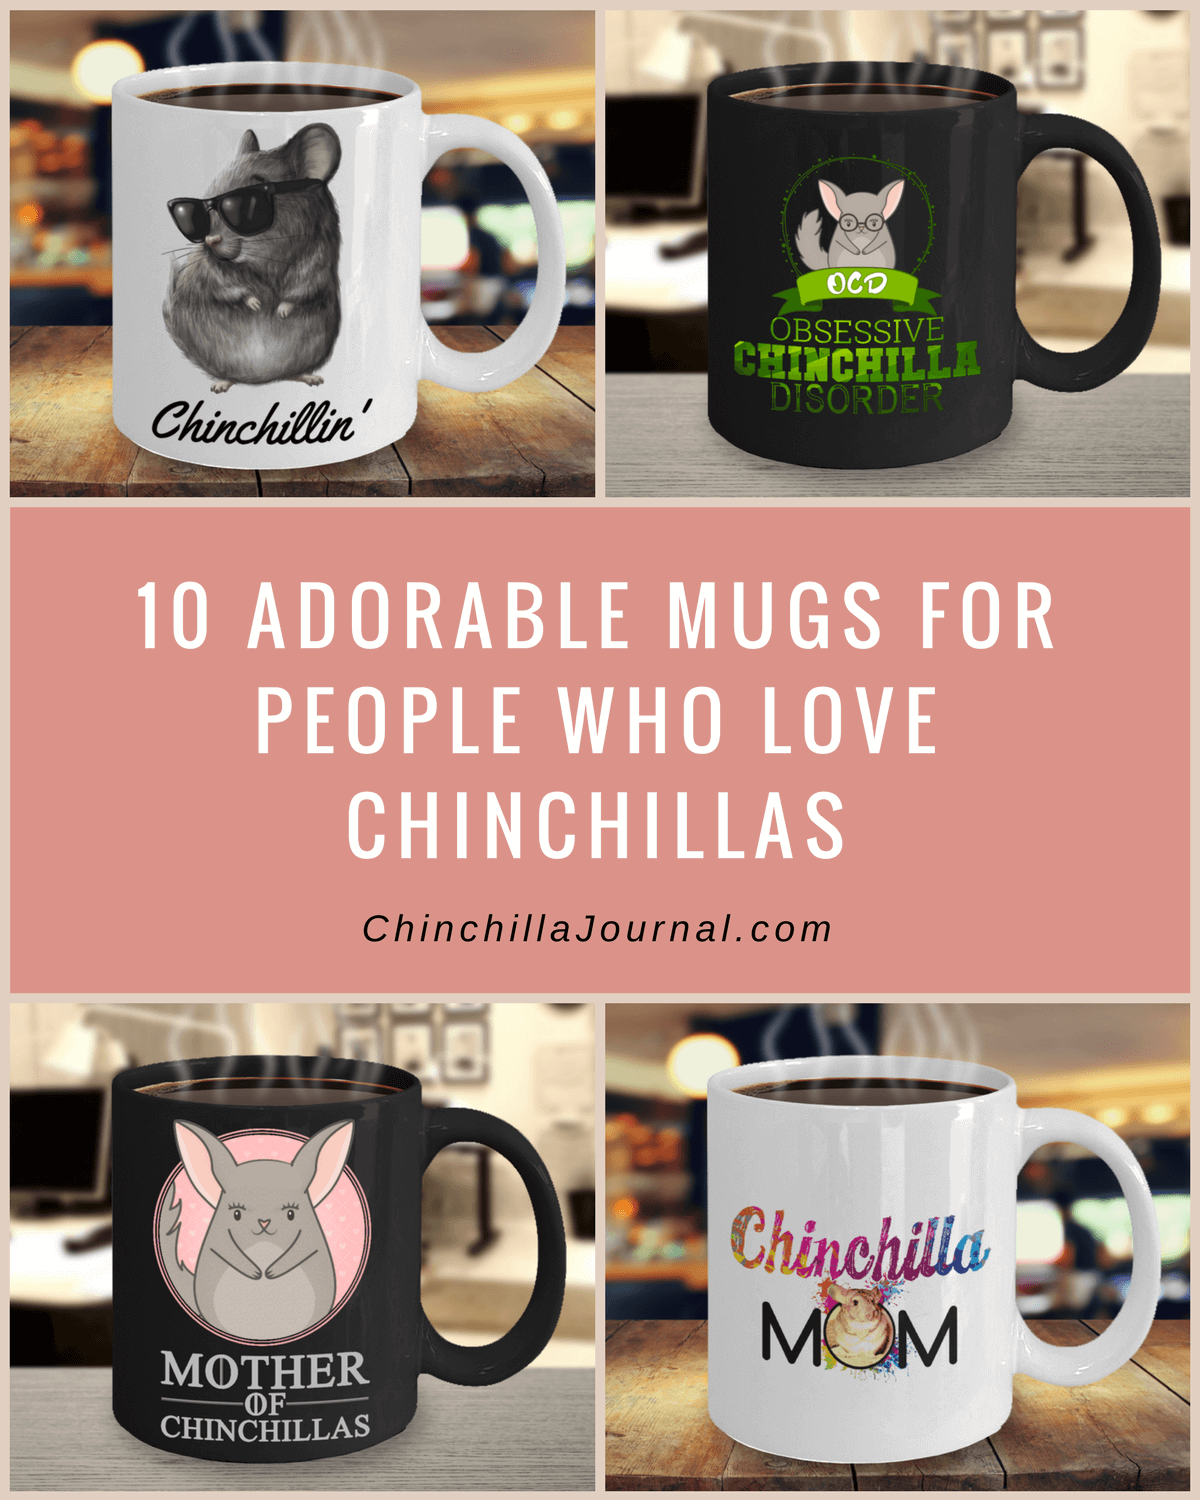 10 Adorable Mugs For People Who Love Chinchillas